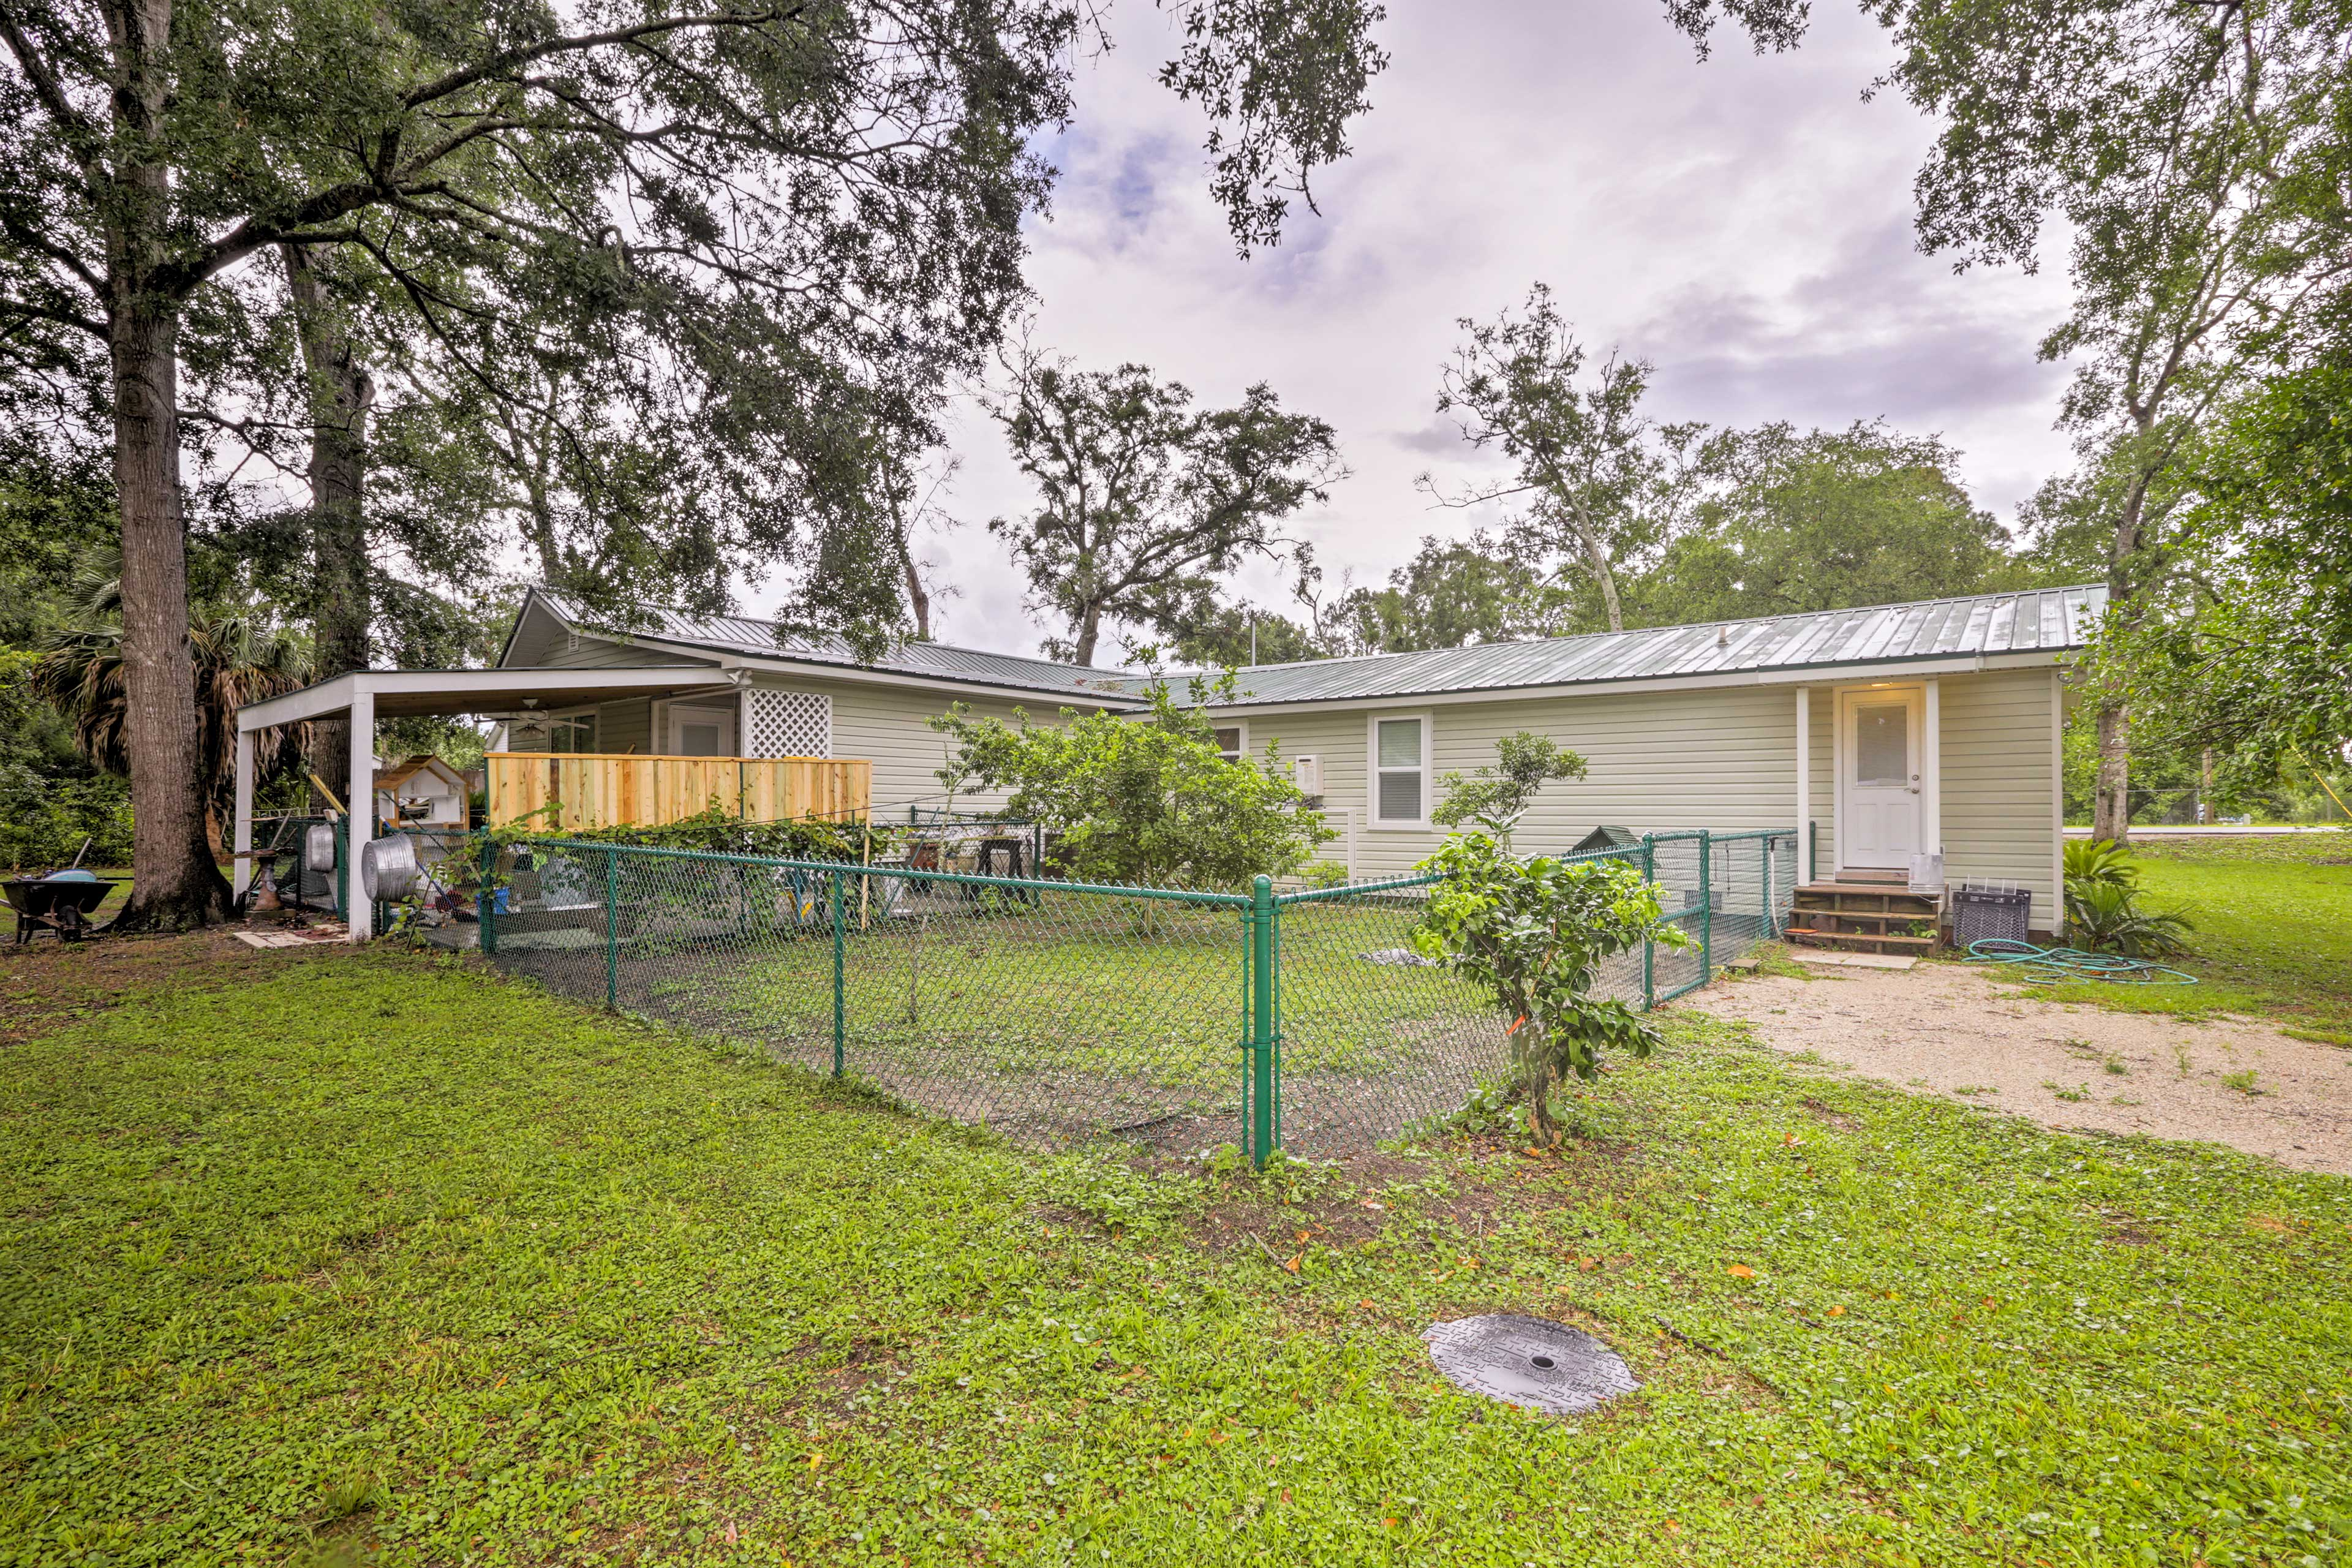 This property is pet-friendly and has a large yard for them to run and play.